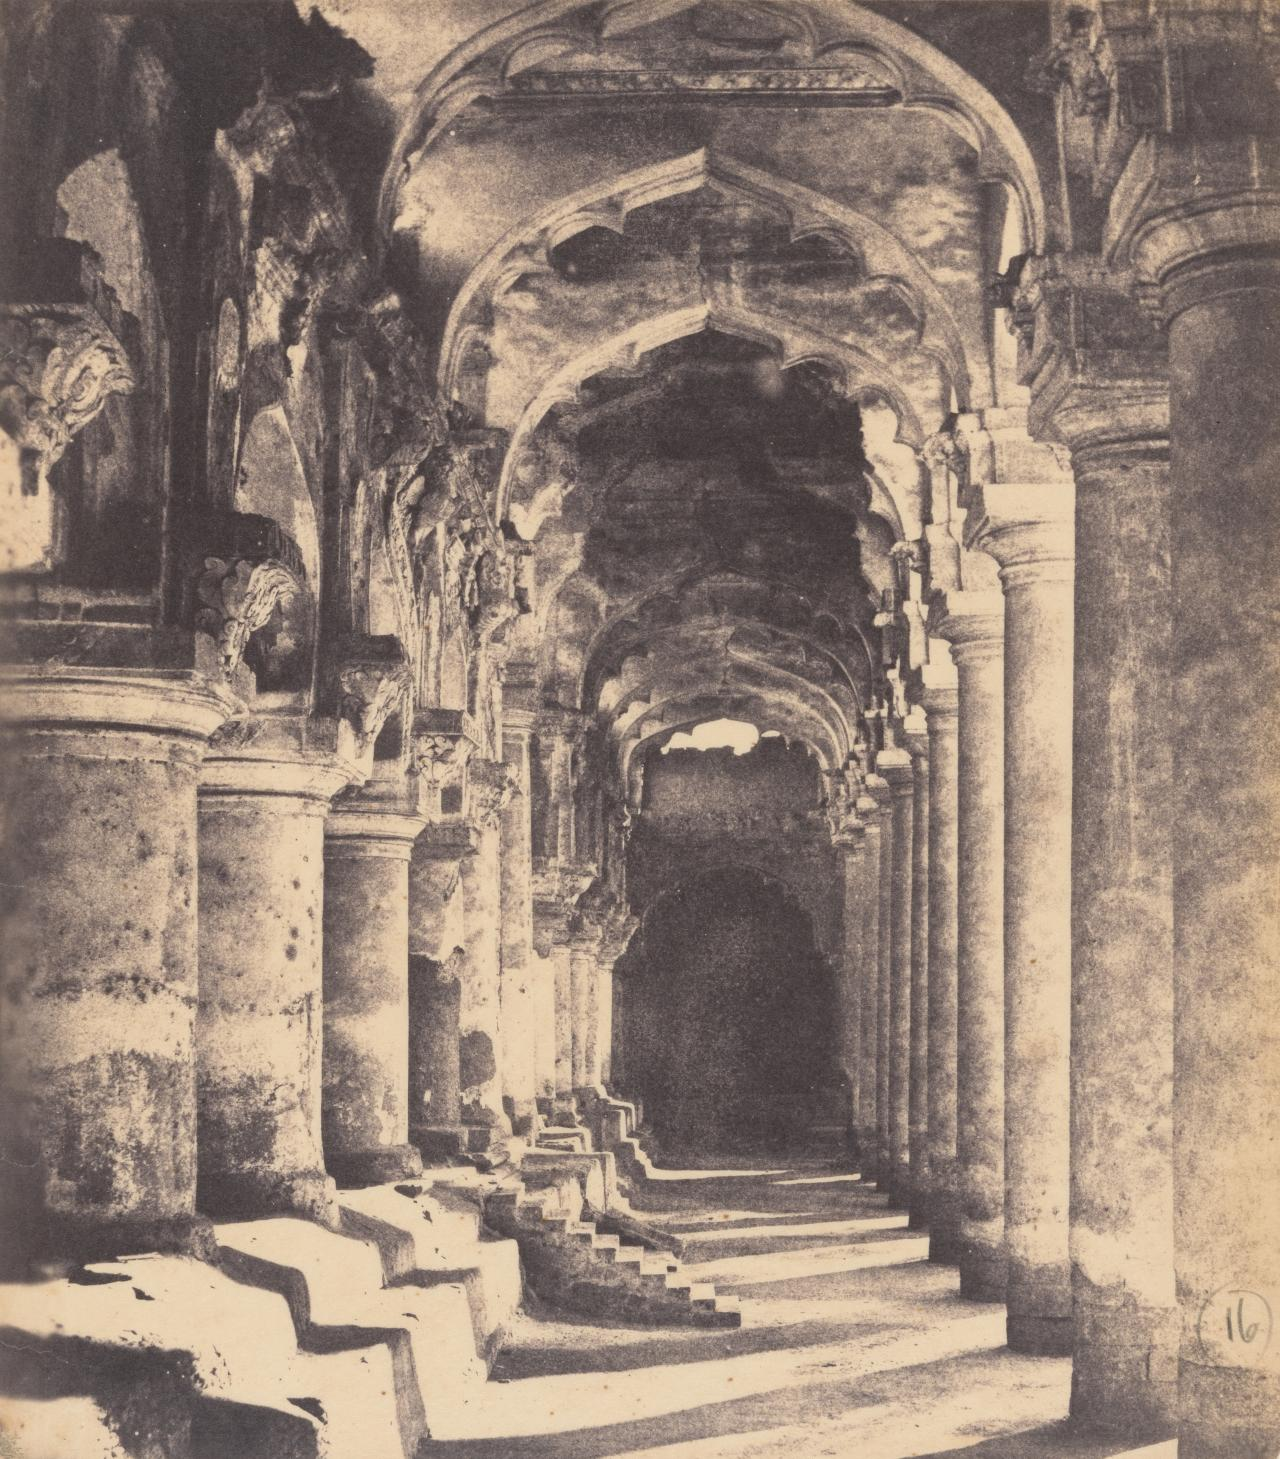 Madura, arcade in the quadrangle of Trimul Naik's Palace